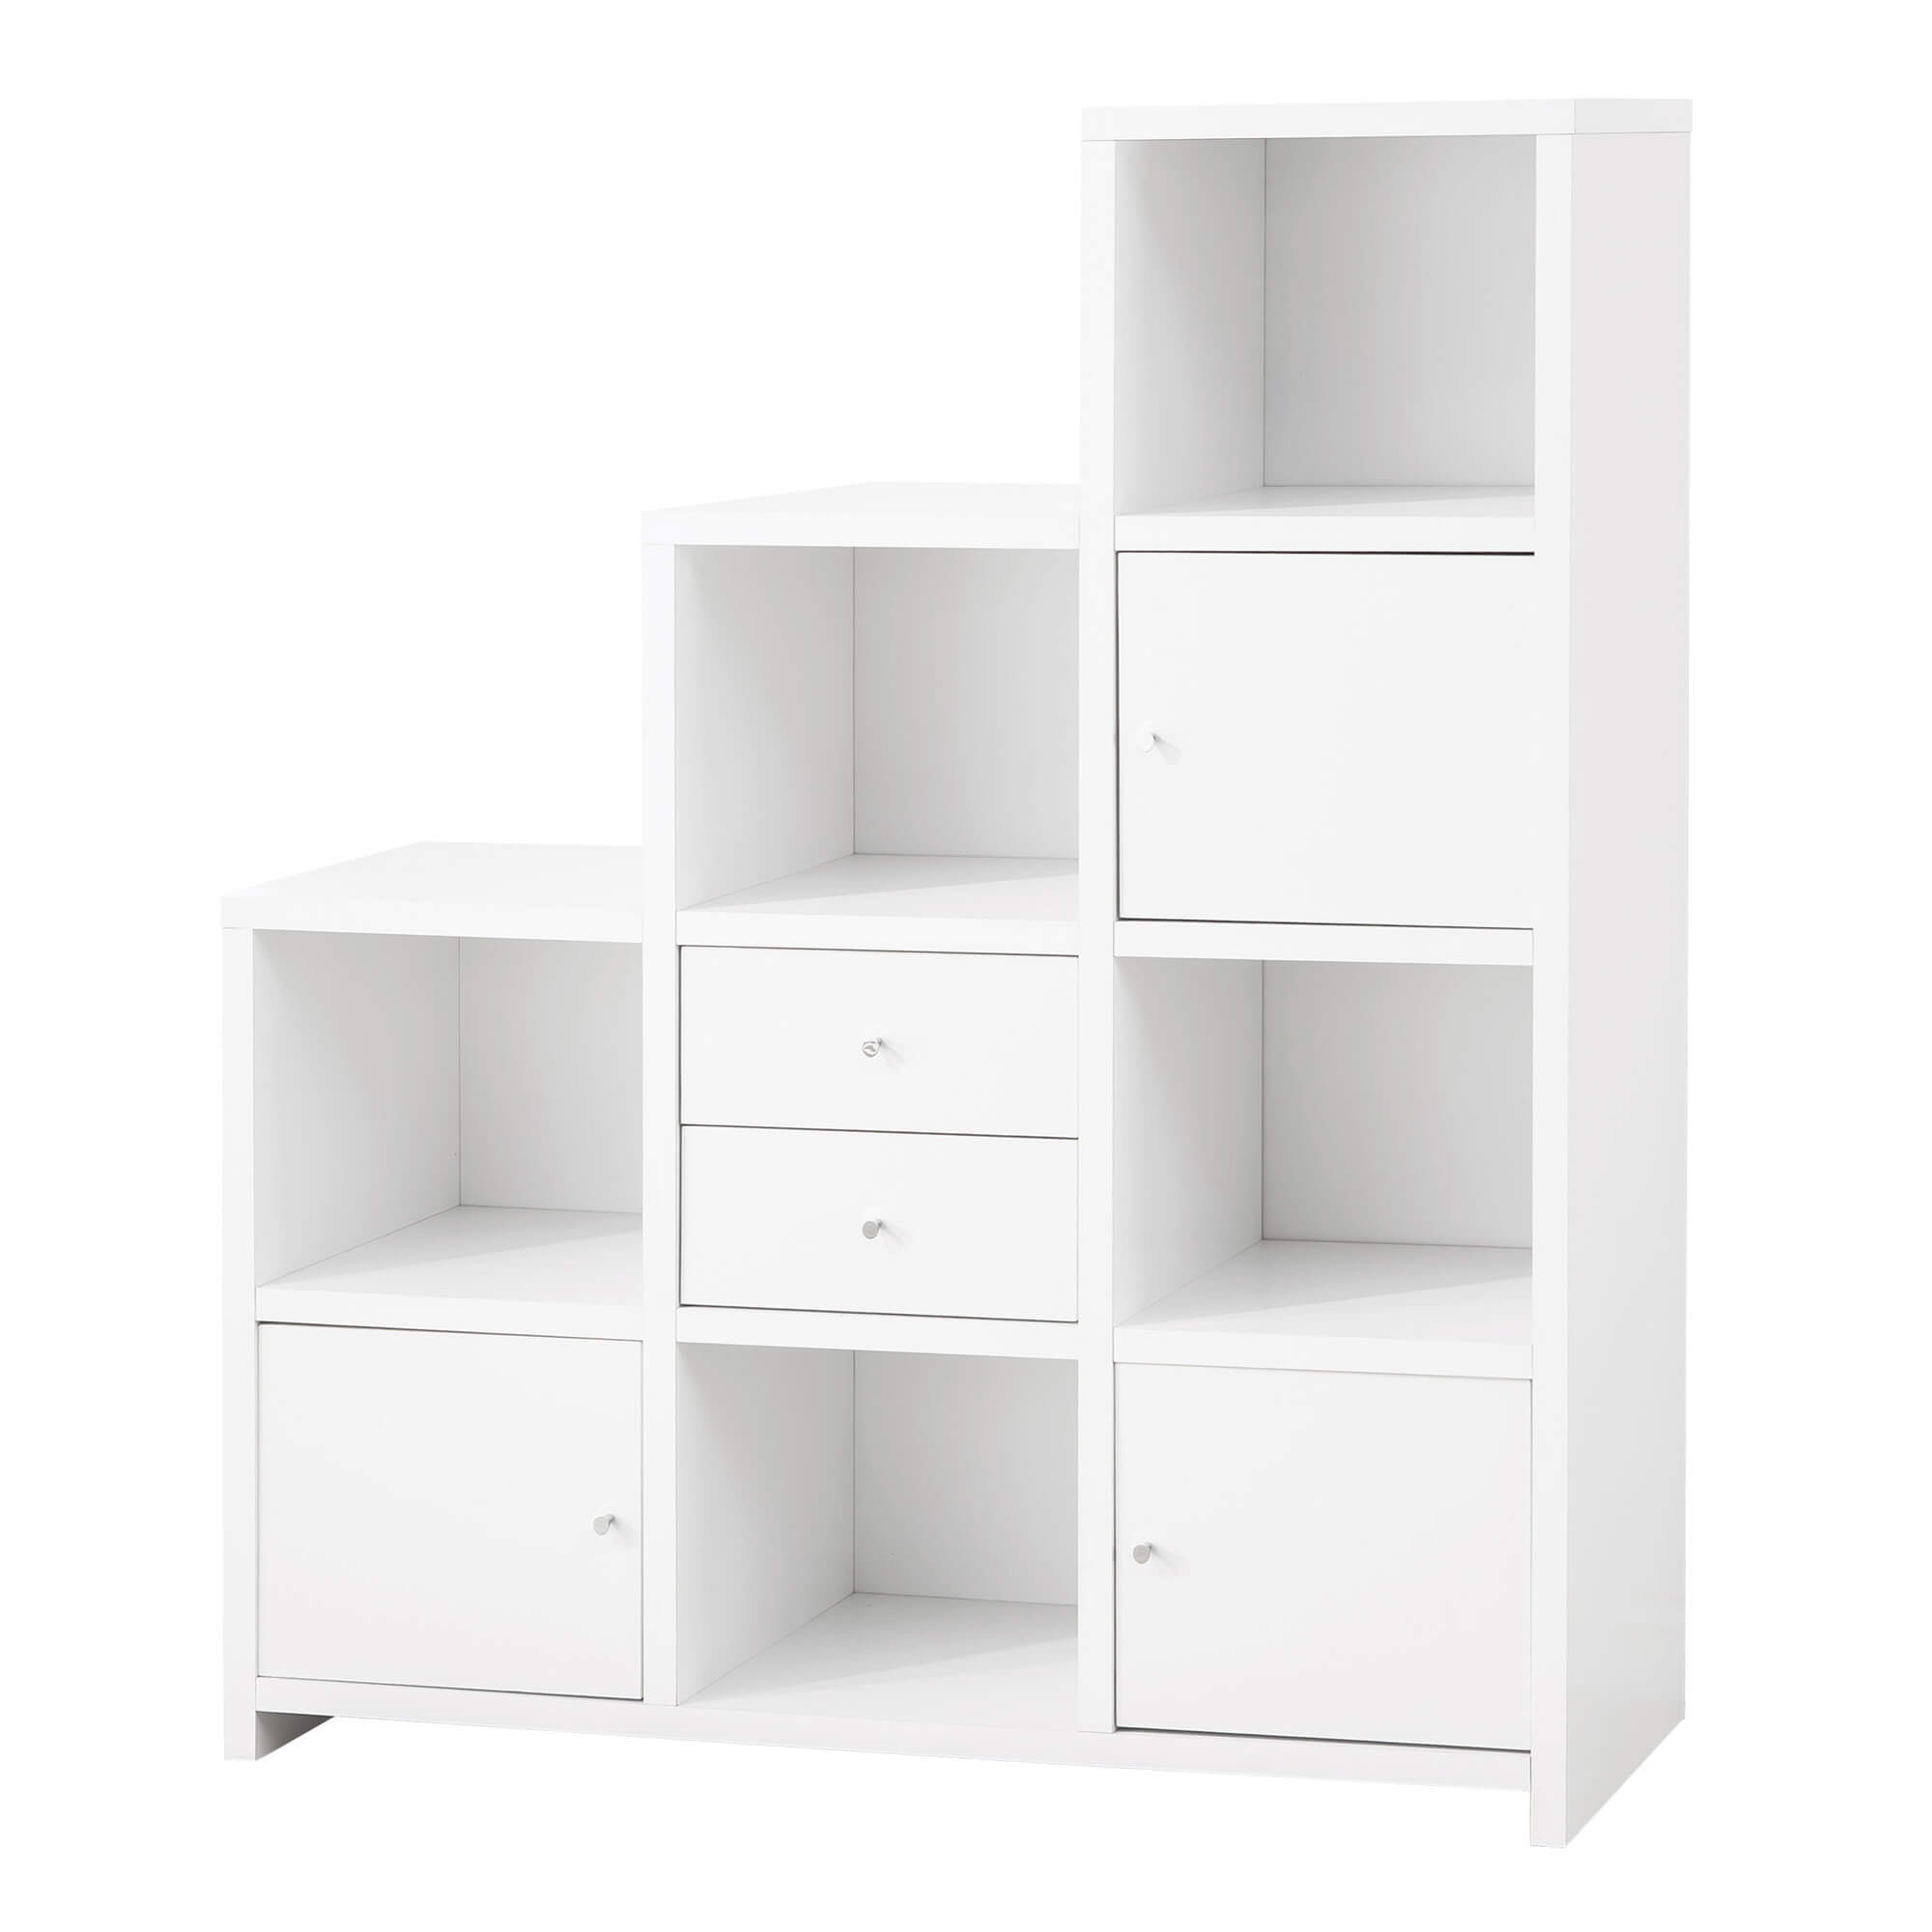 age stor shelf hei prod p qlt wid unit spin storage